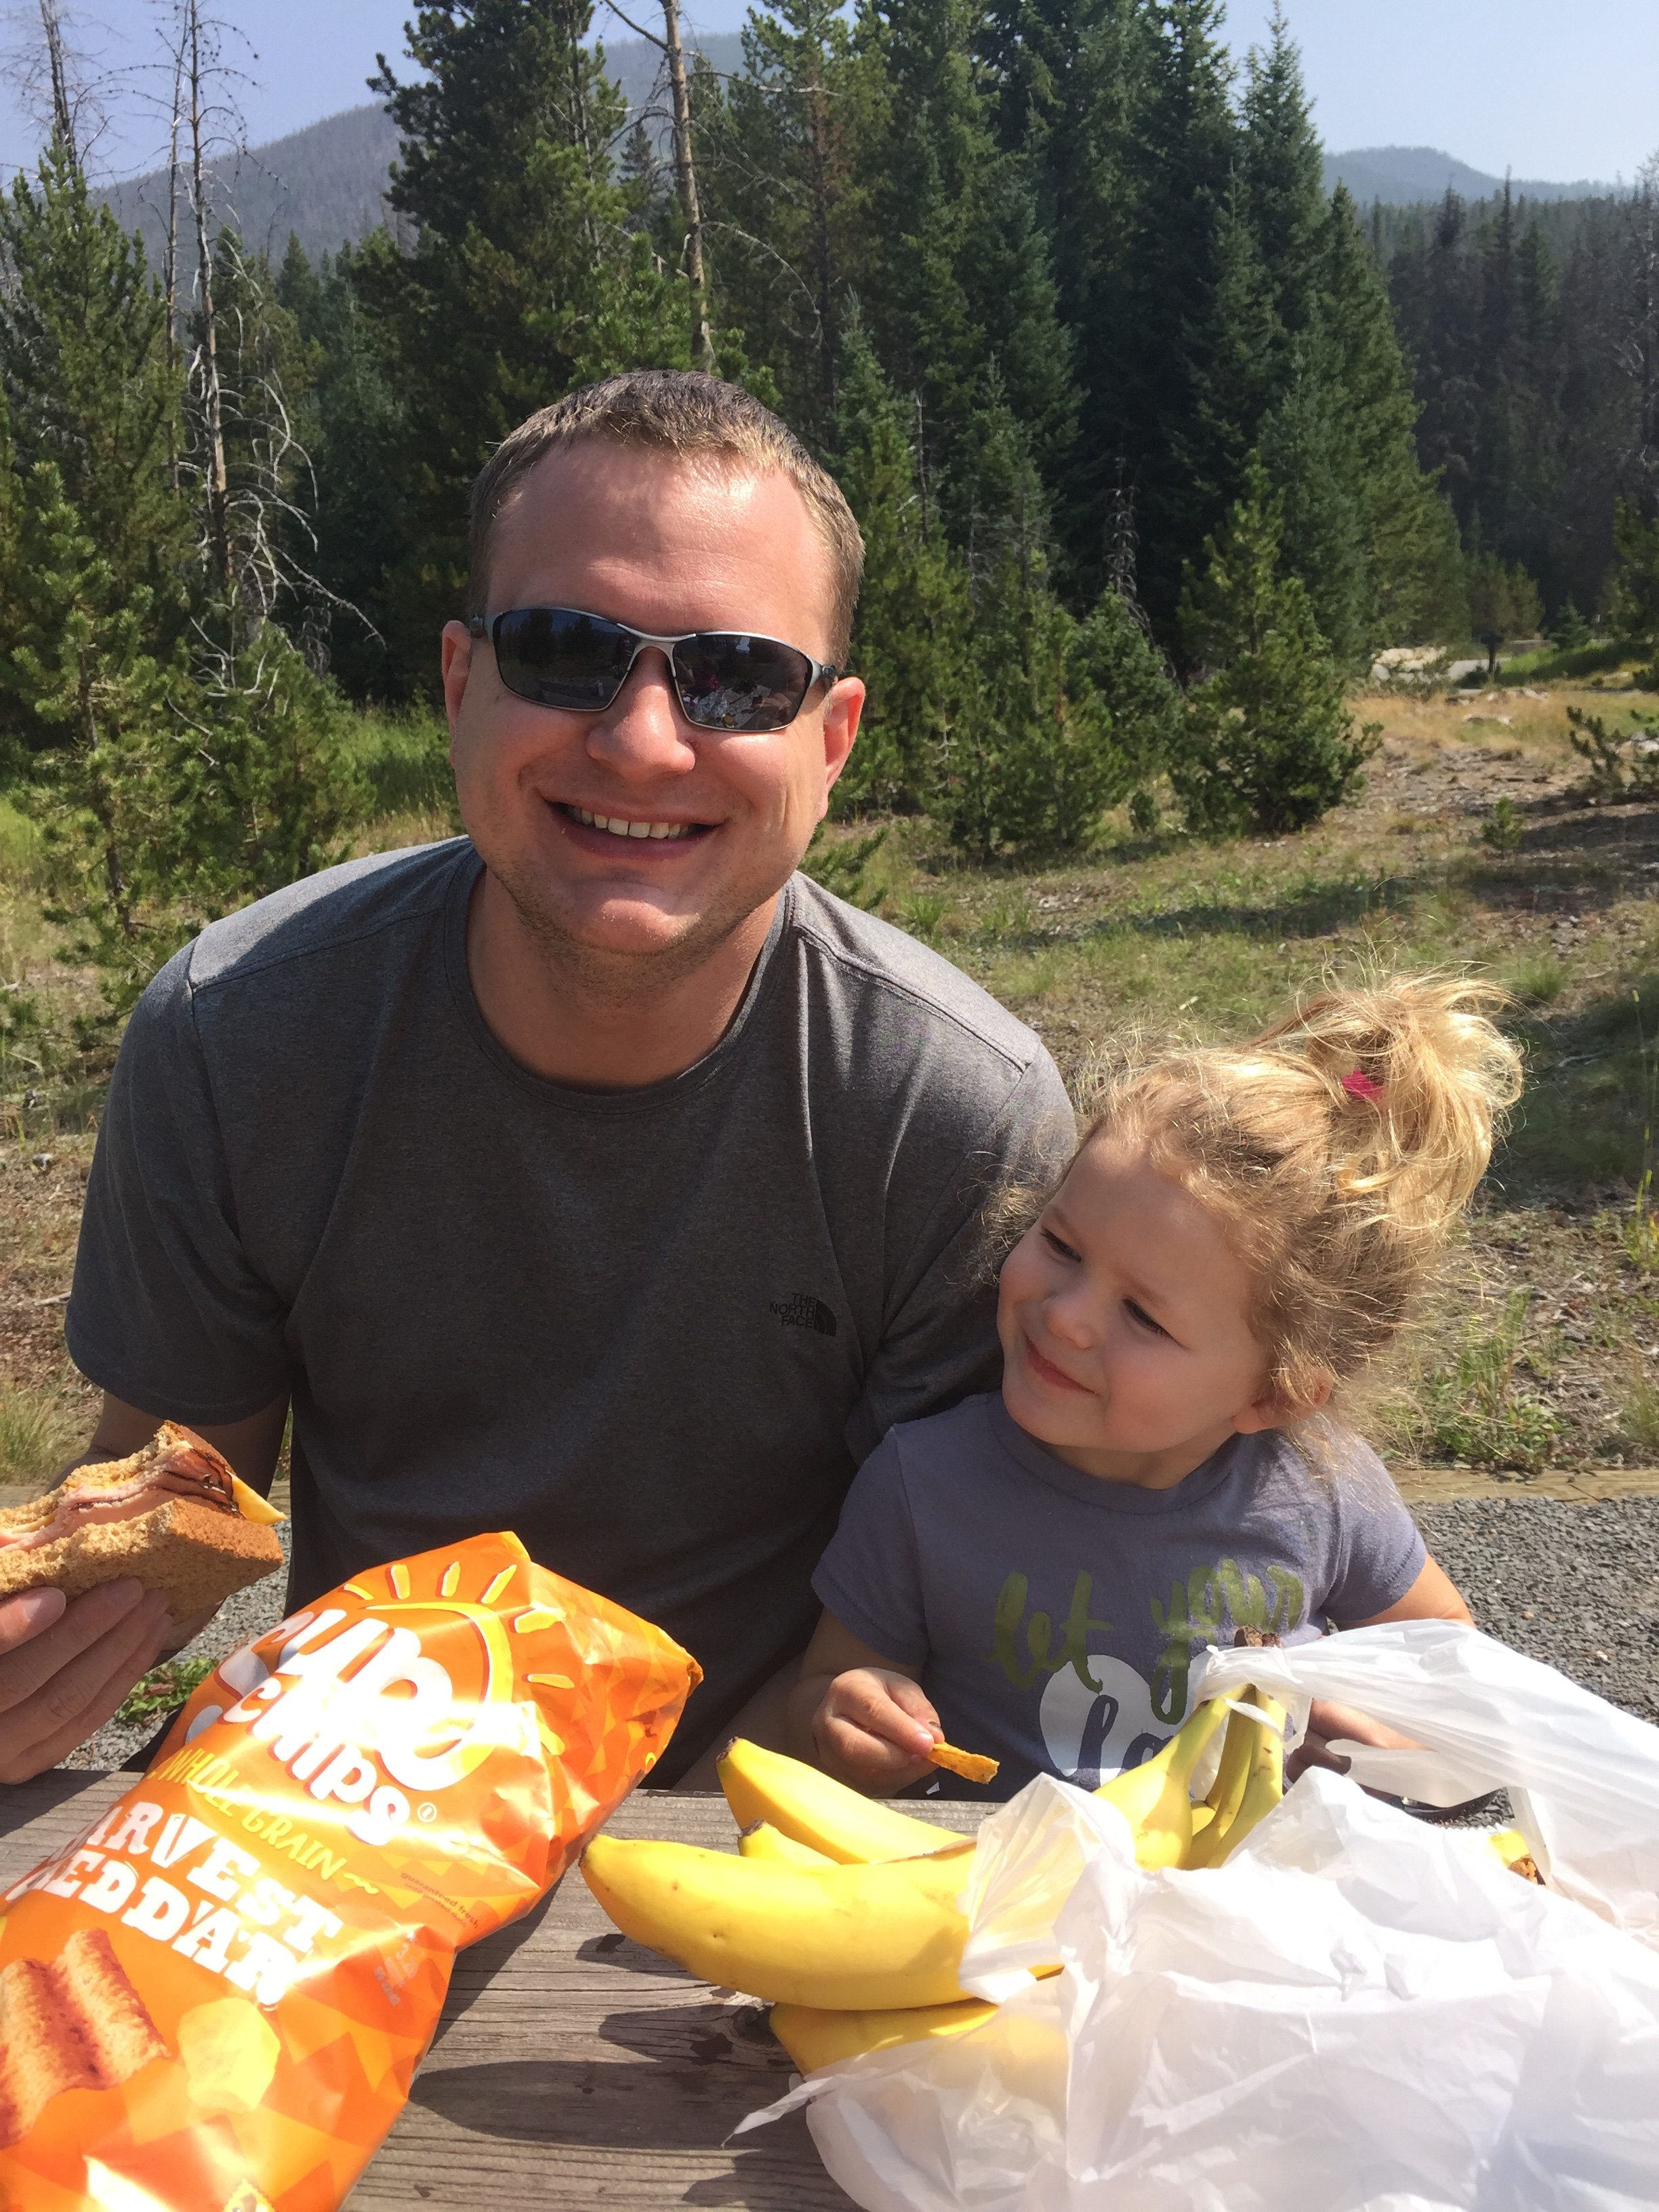 Picnicking in Rocky mountain National Park